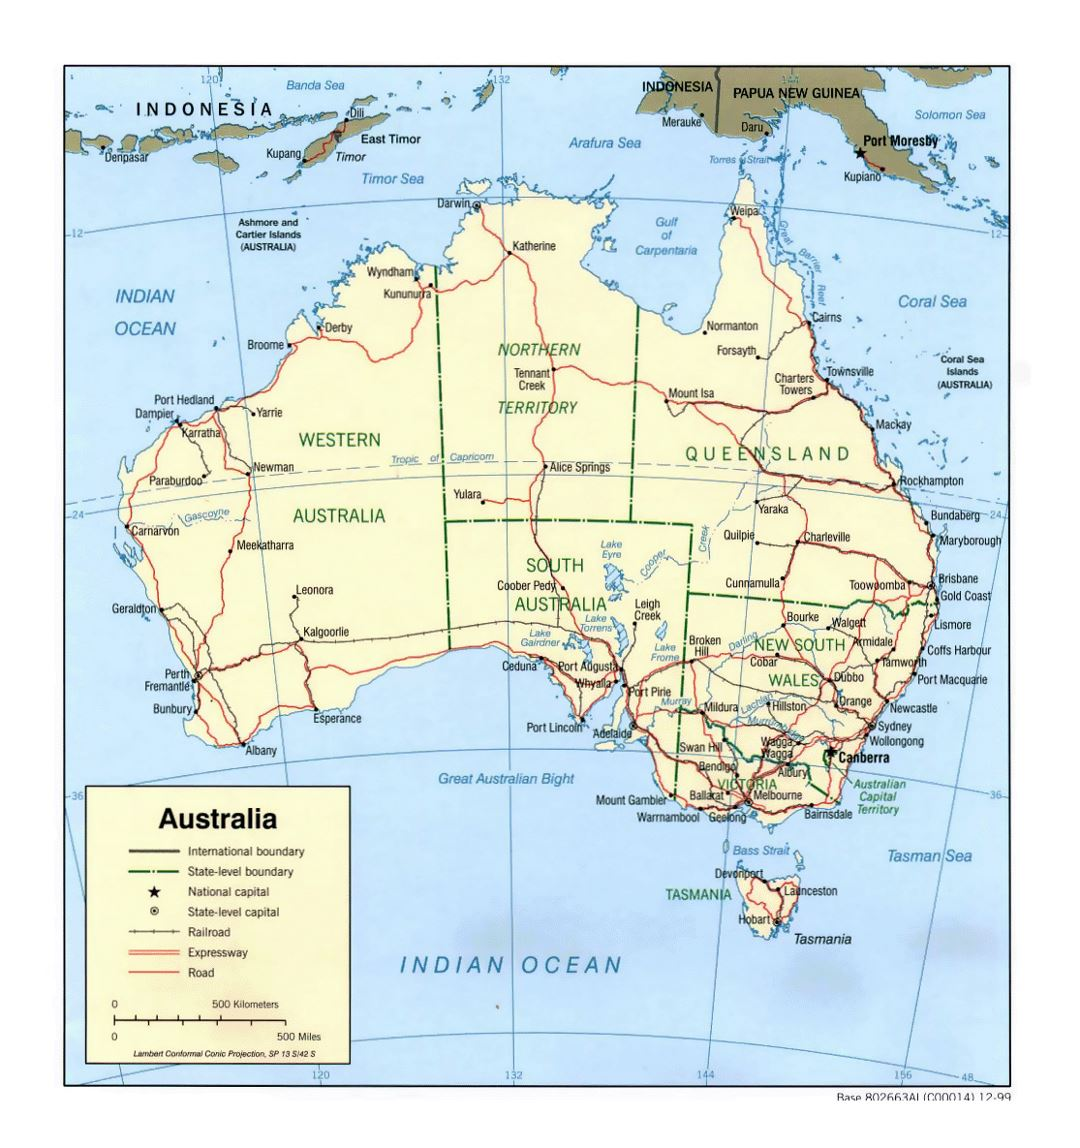 Detailed political and administrative map of Australia with roads, railroads and cities - 1999